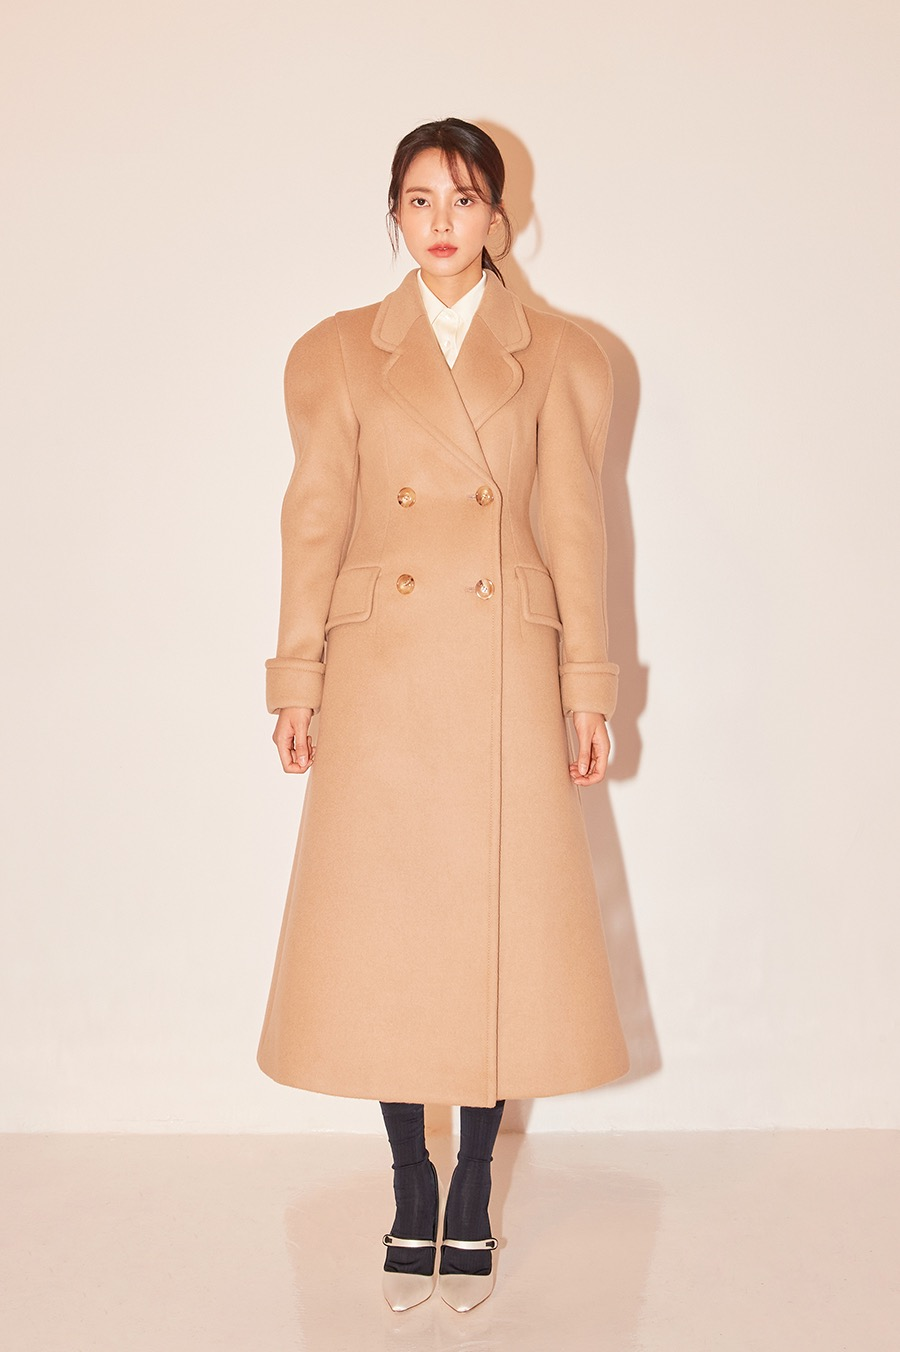 NO.2 OUTER - BEIGE